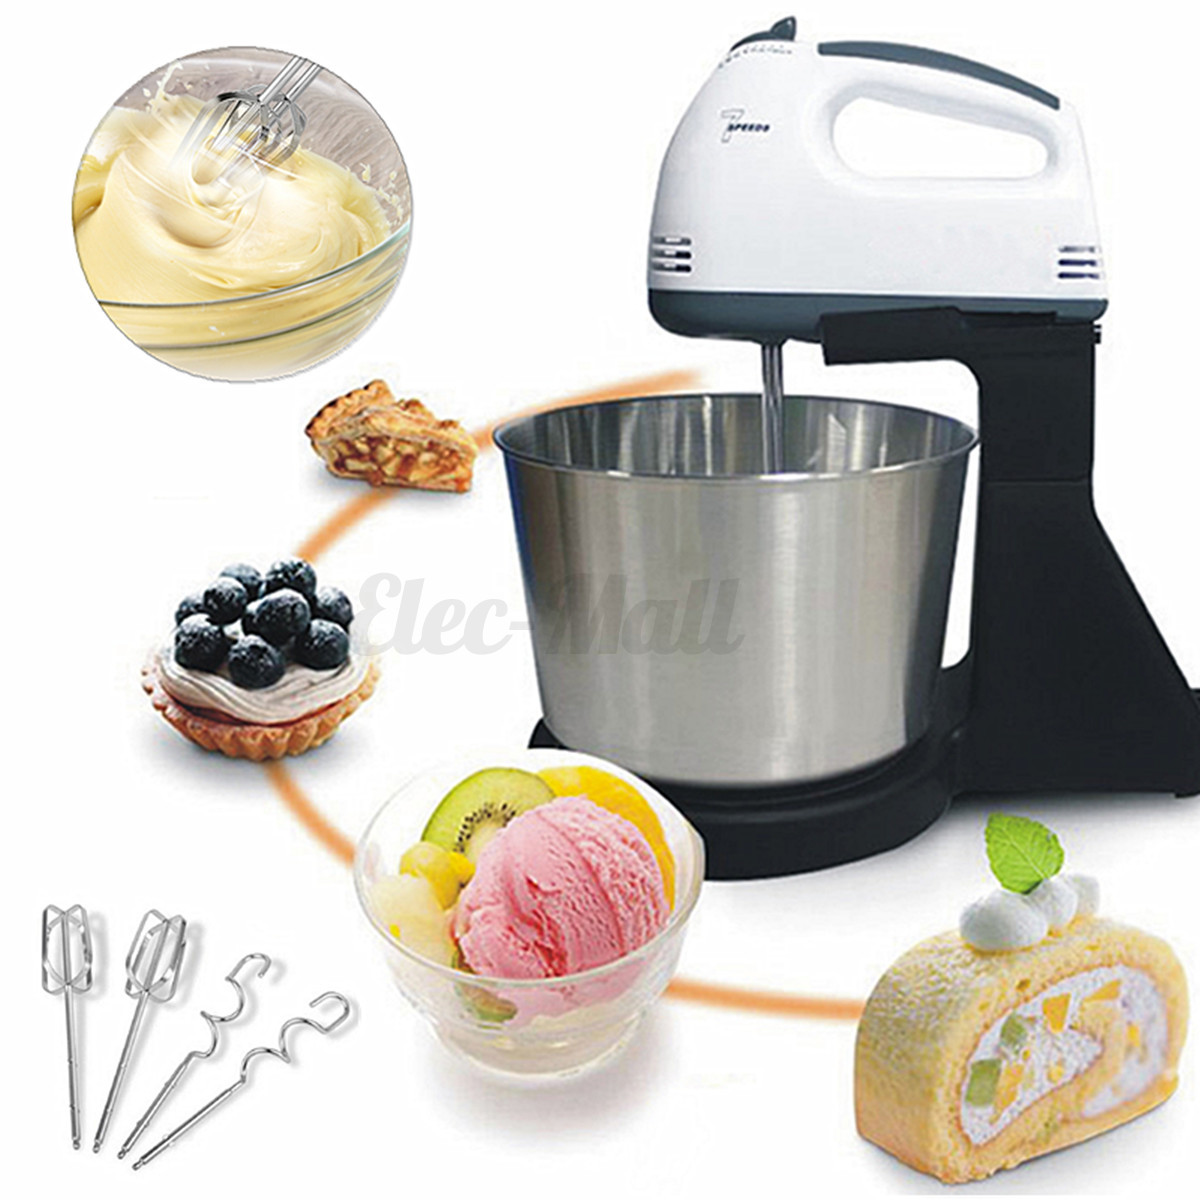 Which Speed Hand Mixer Will Be Good For Cake Mixing